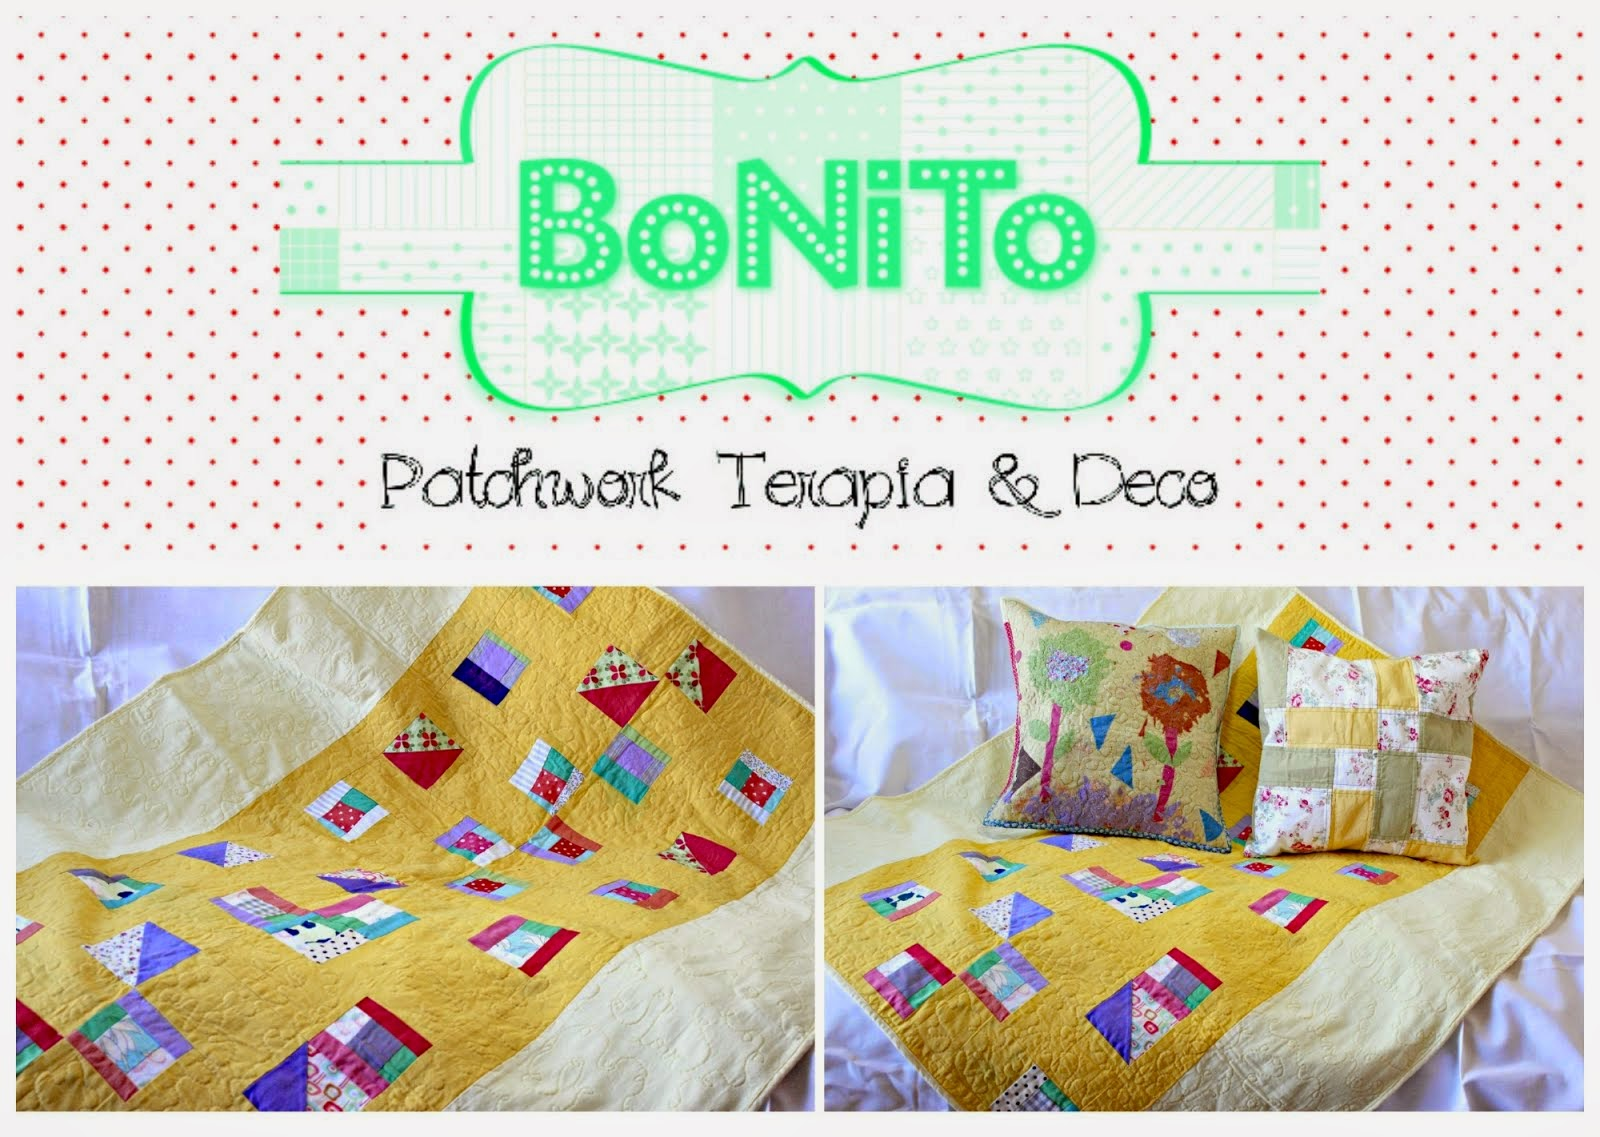 Bonito Patchwork